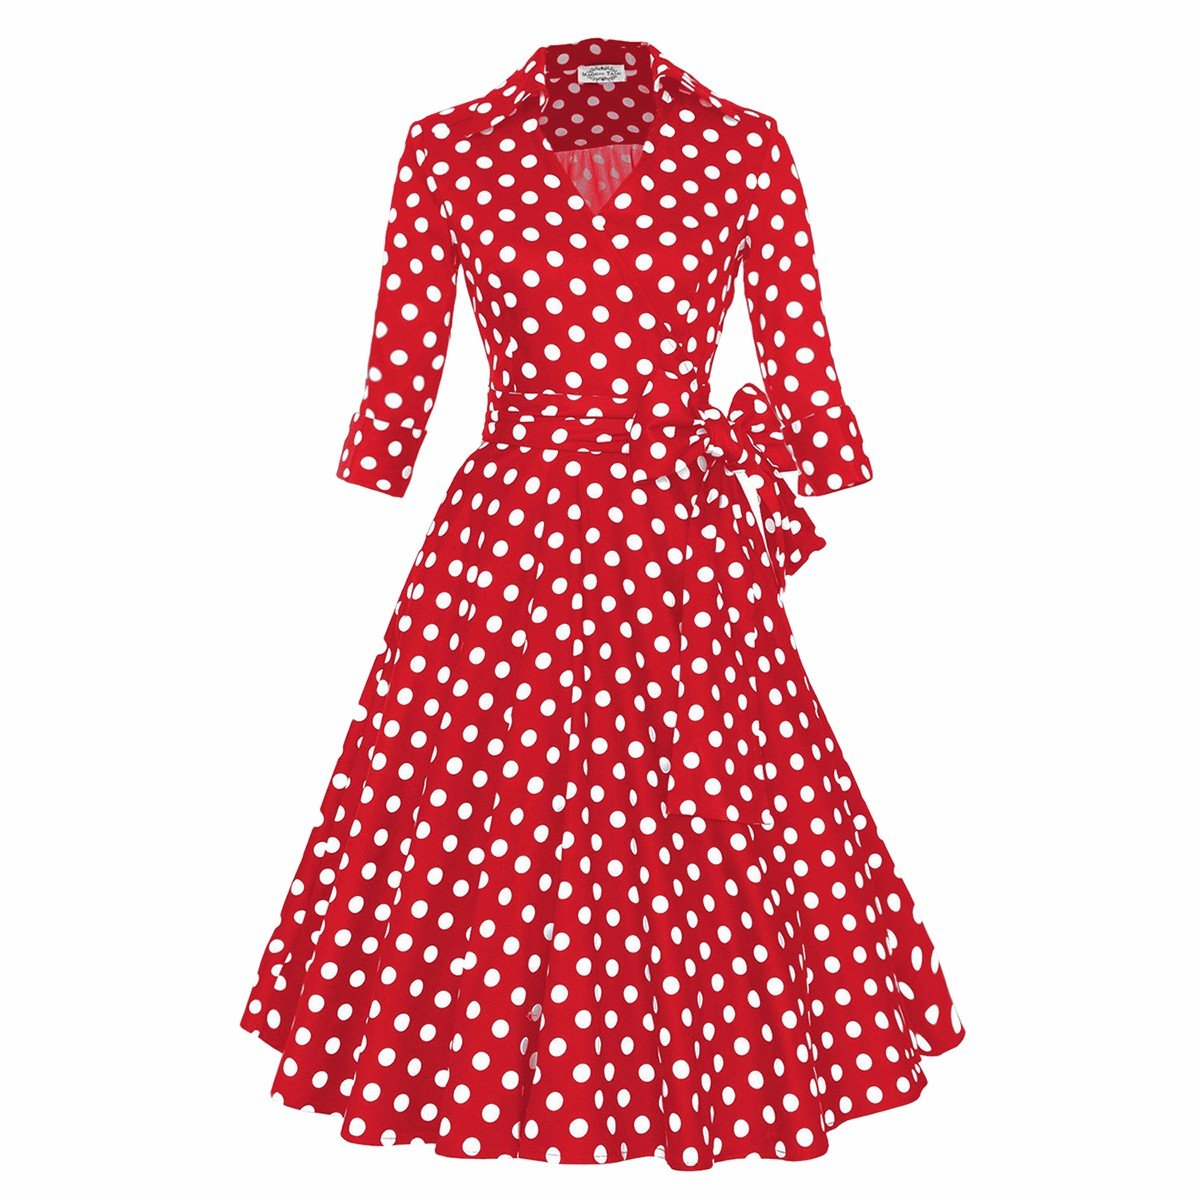 Samtree Womens 50s Style Half Sleeves Deep V Neck Vintage Swing Polka Dot Dress(S(US 4-6),Red Polka Dot)